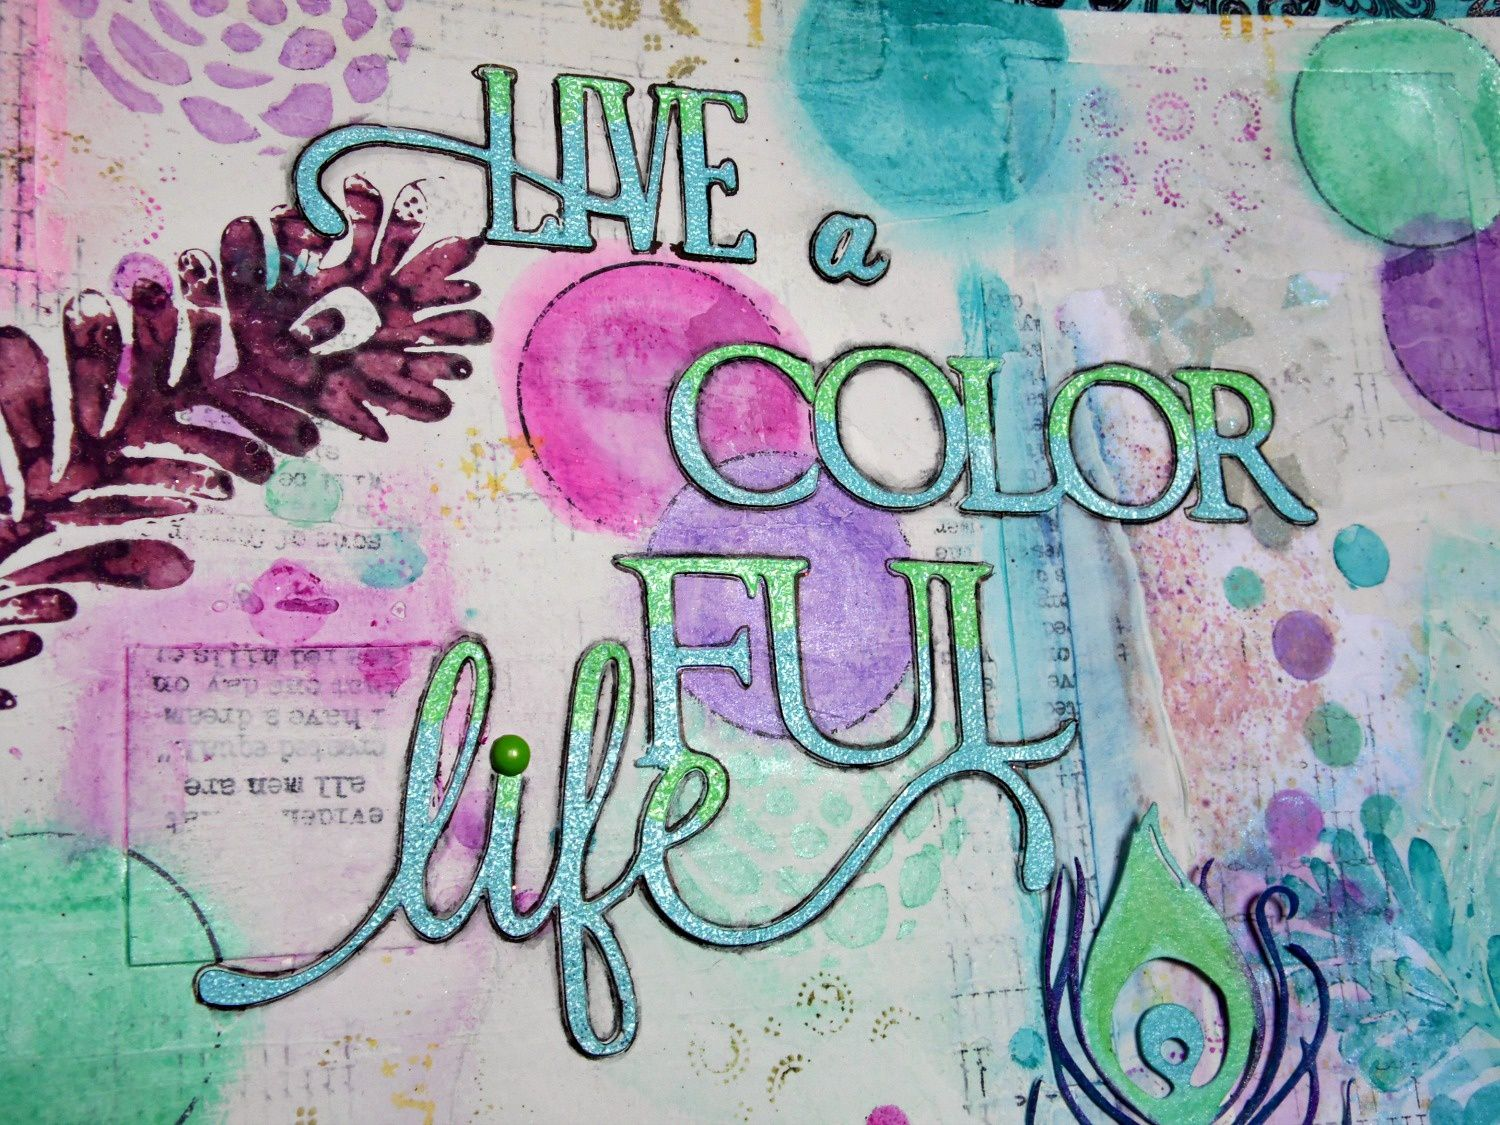 Live a colorful life!!!